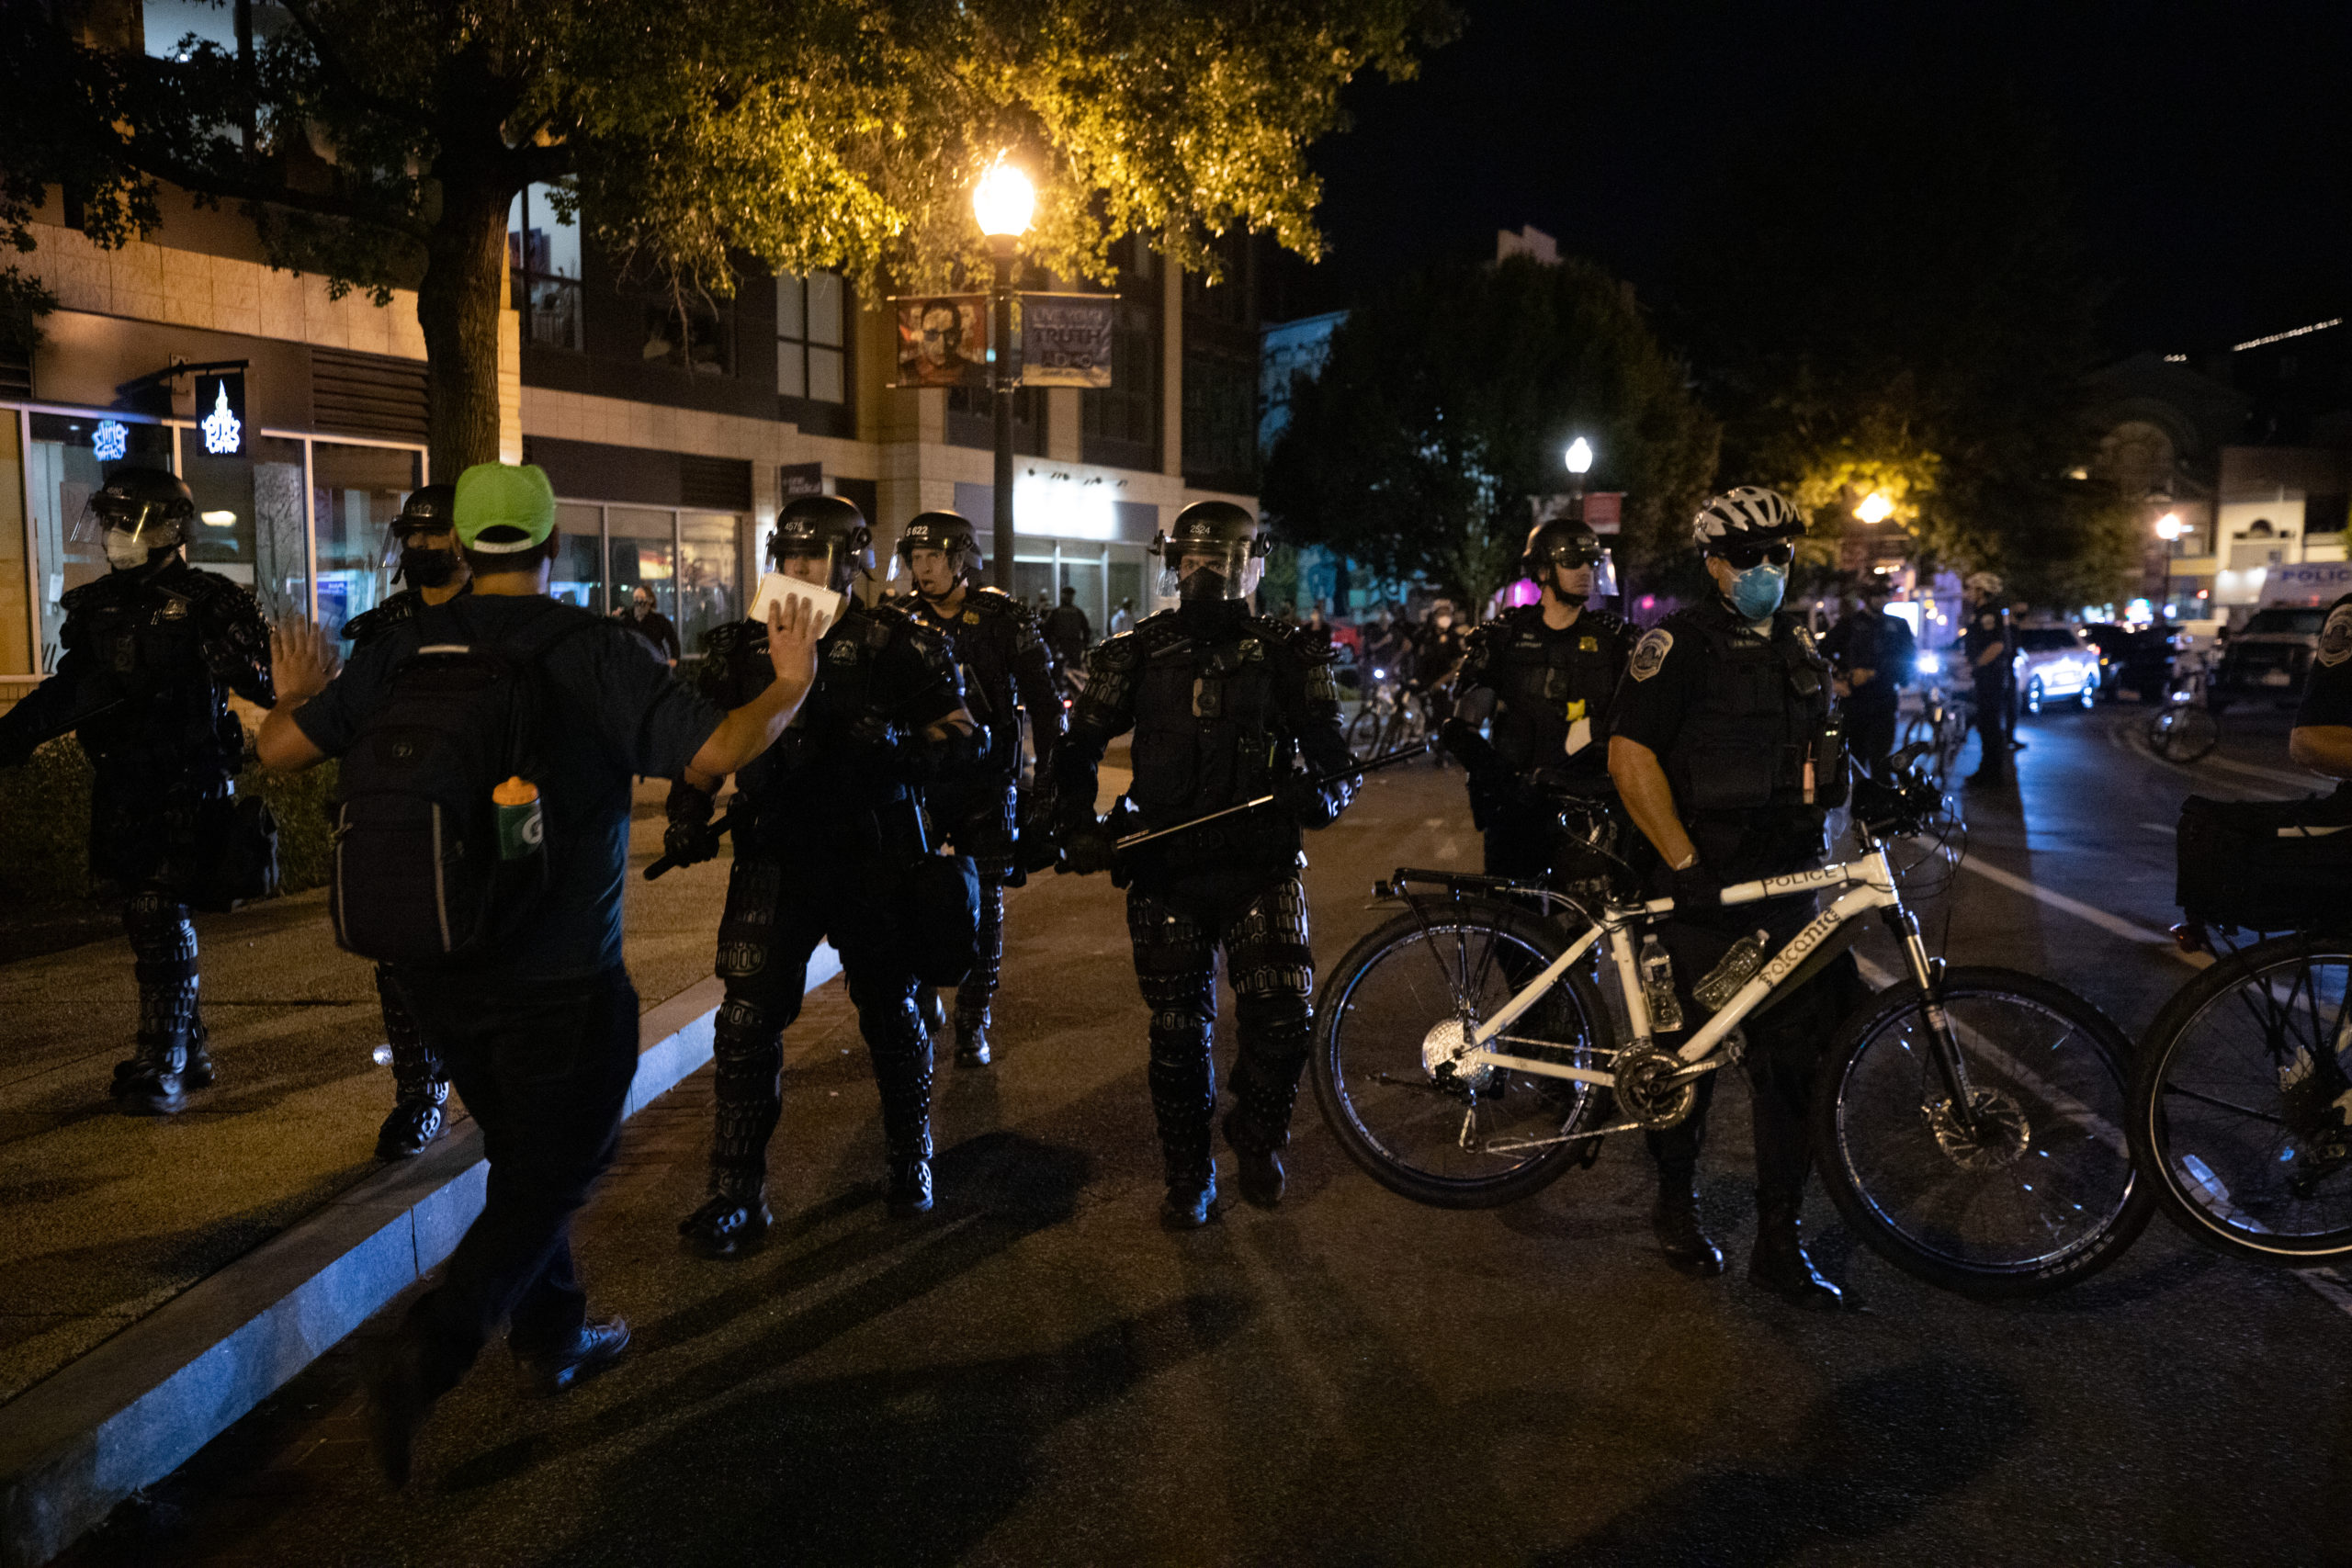 Protesters march through residential streets in Washington, D.C. on Sept. 23, 2020. (Kaylee Greenlee - DCNF)